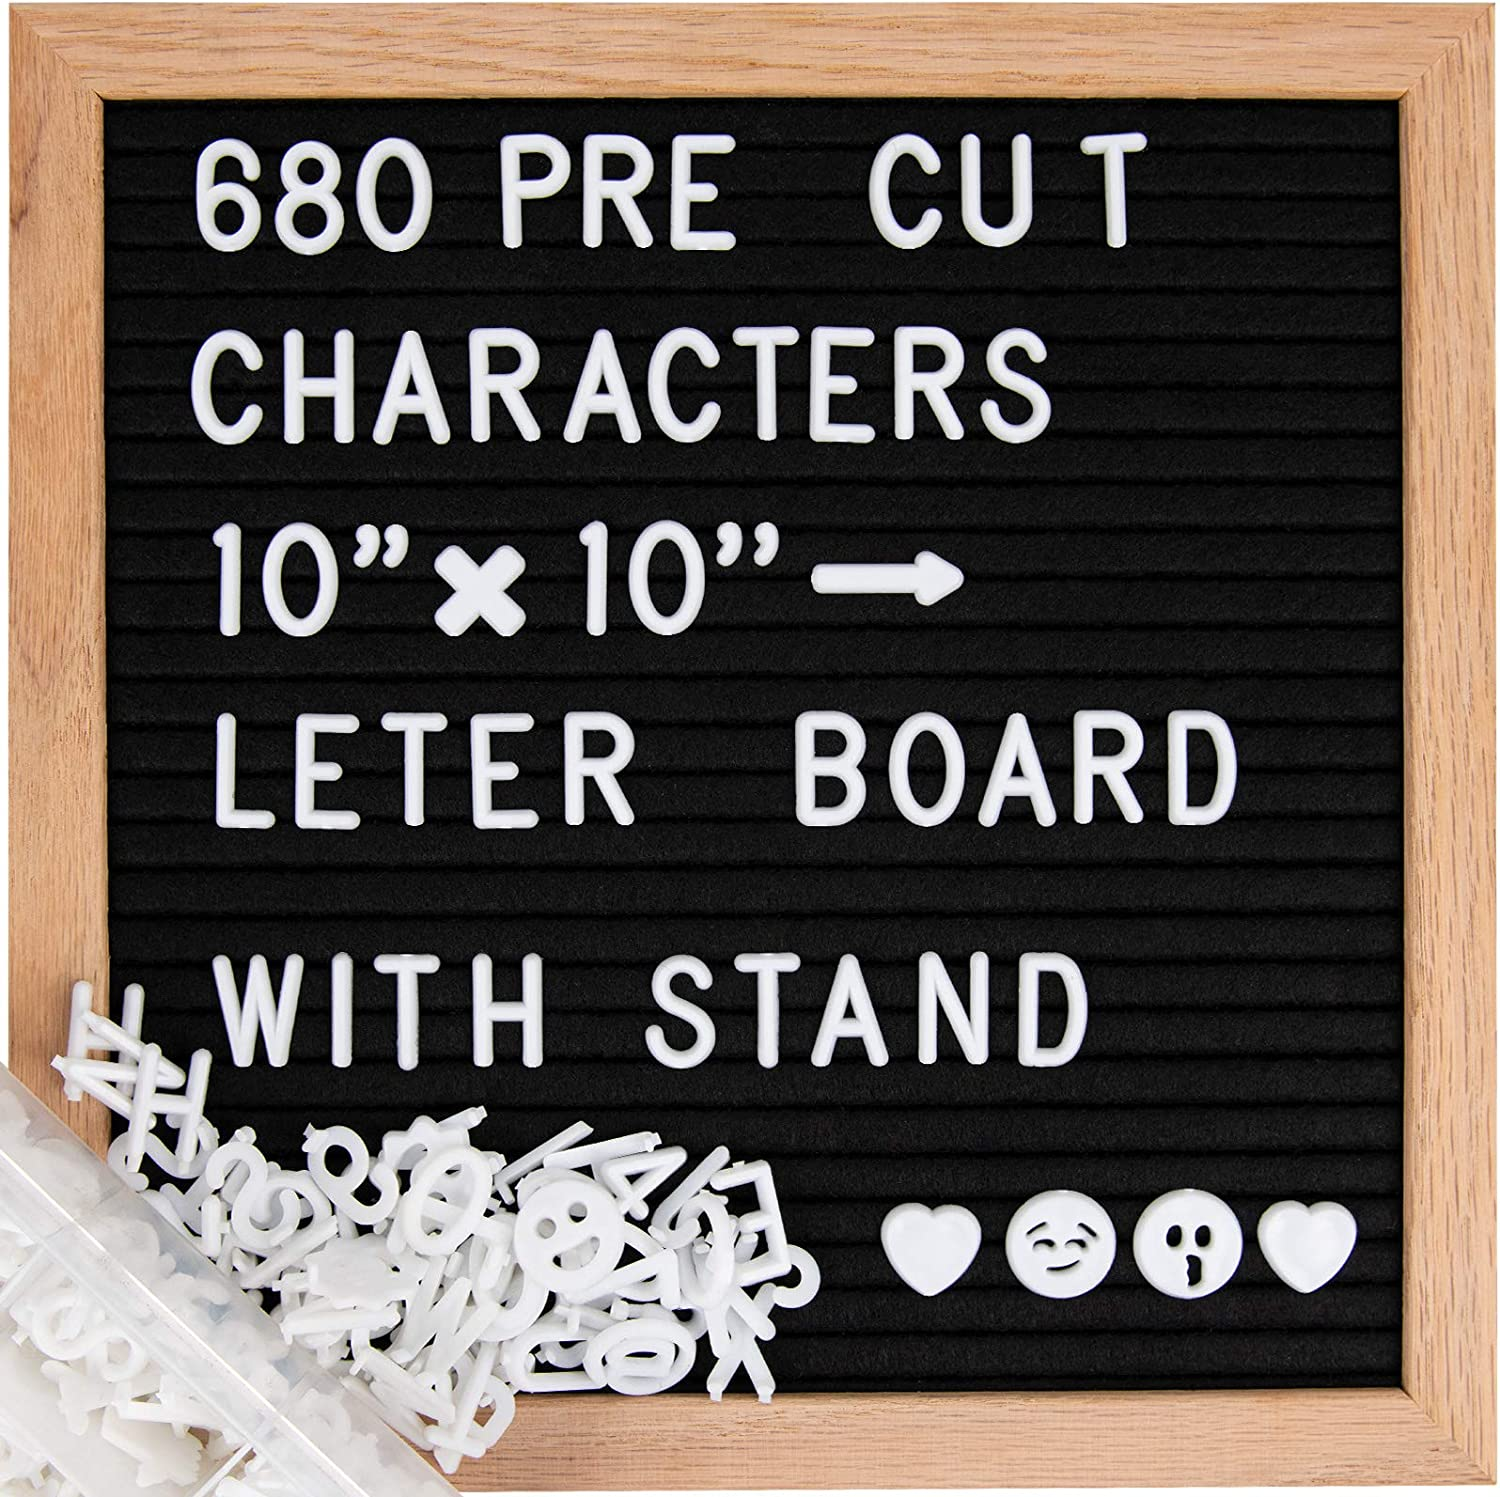 Shop ABELL Felt Letter Board from Amazon on Openhaus